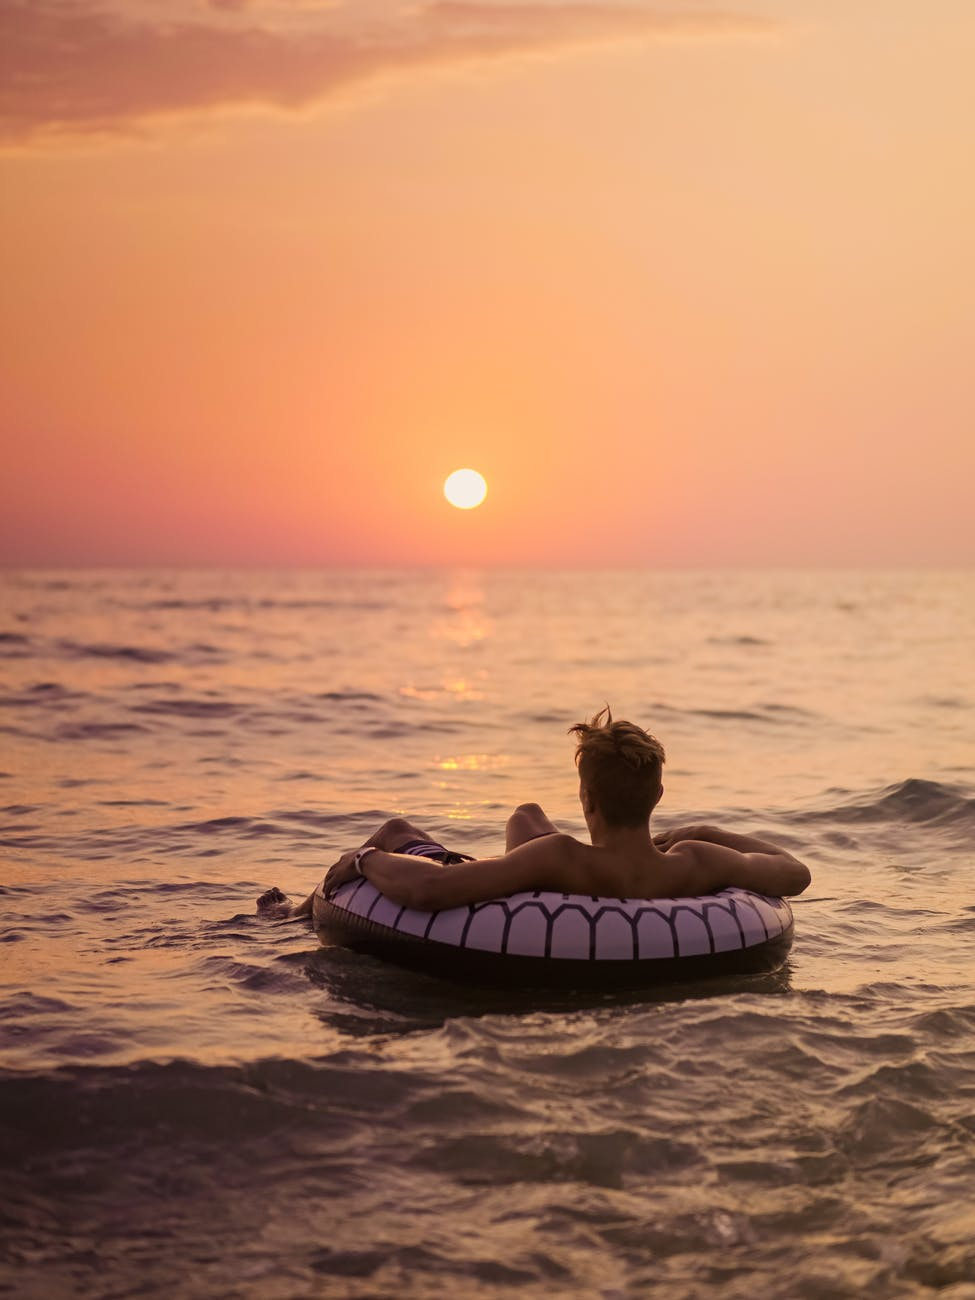 Enjoy the sunshine-What if you had a few days left to live?